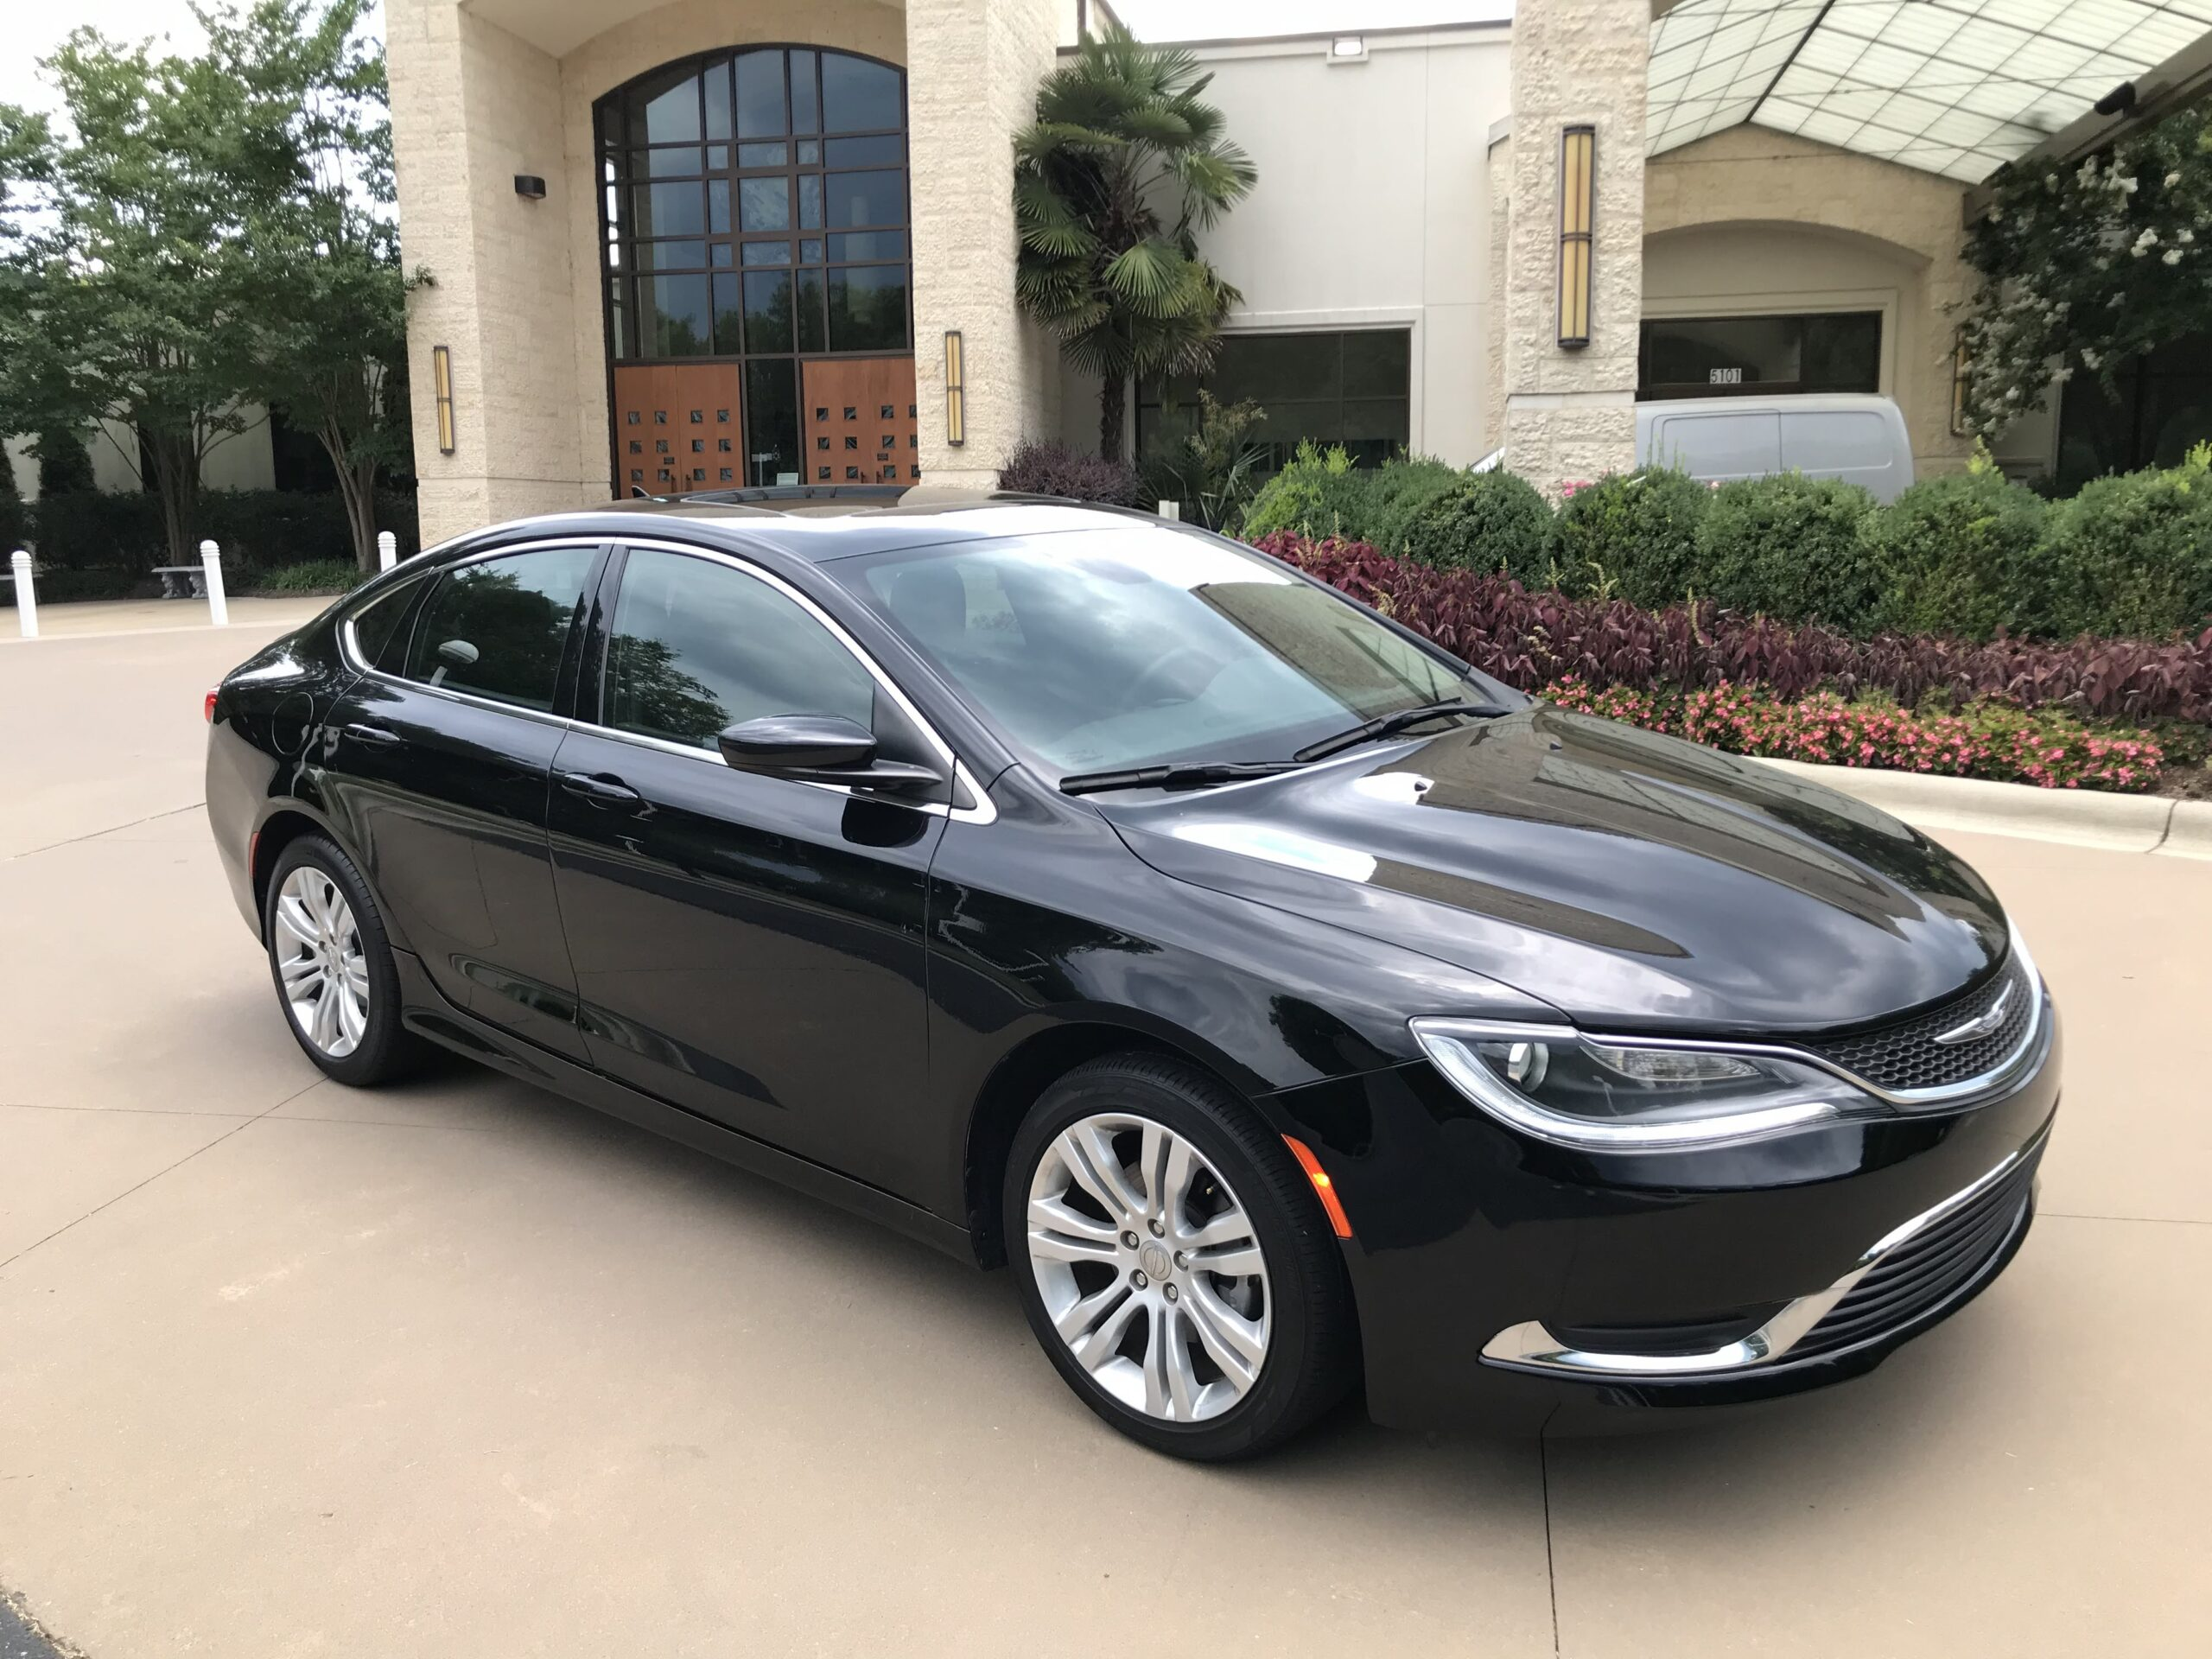 2016 CHRYSLER 200 ANNIVERSARY EDITION